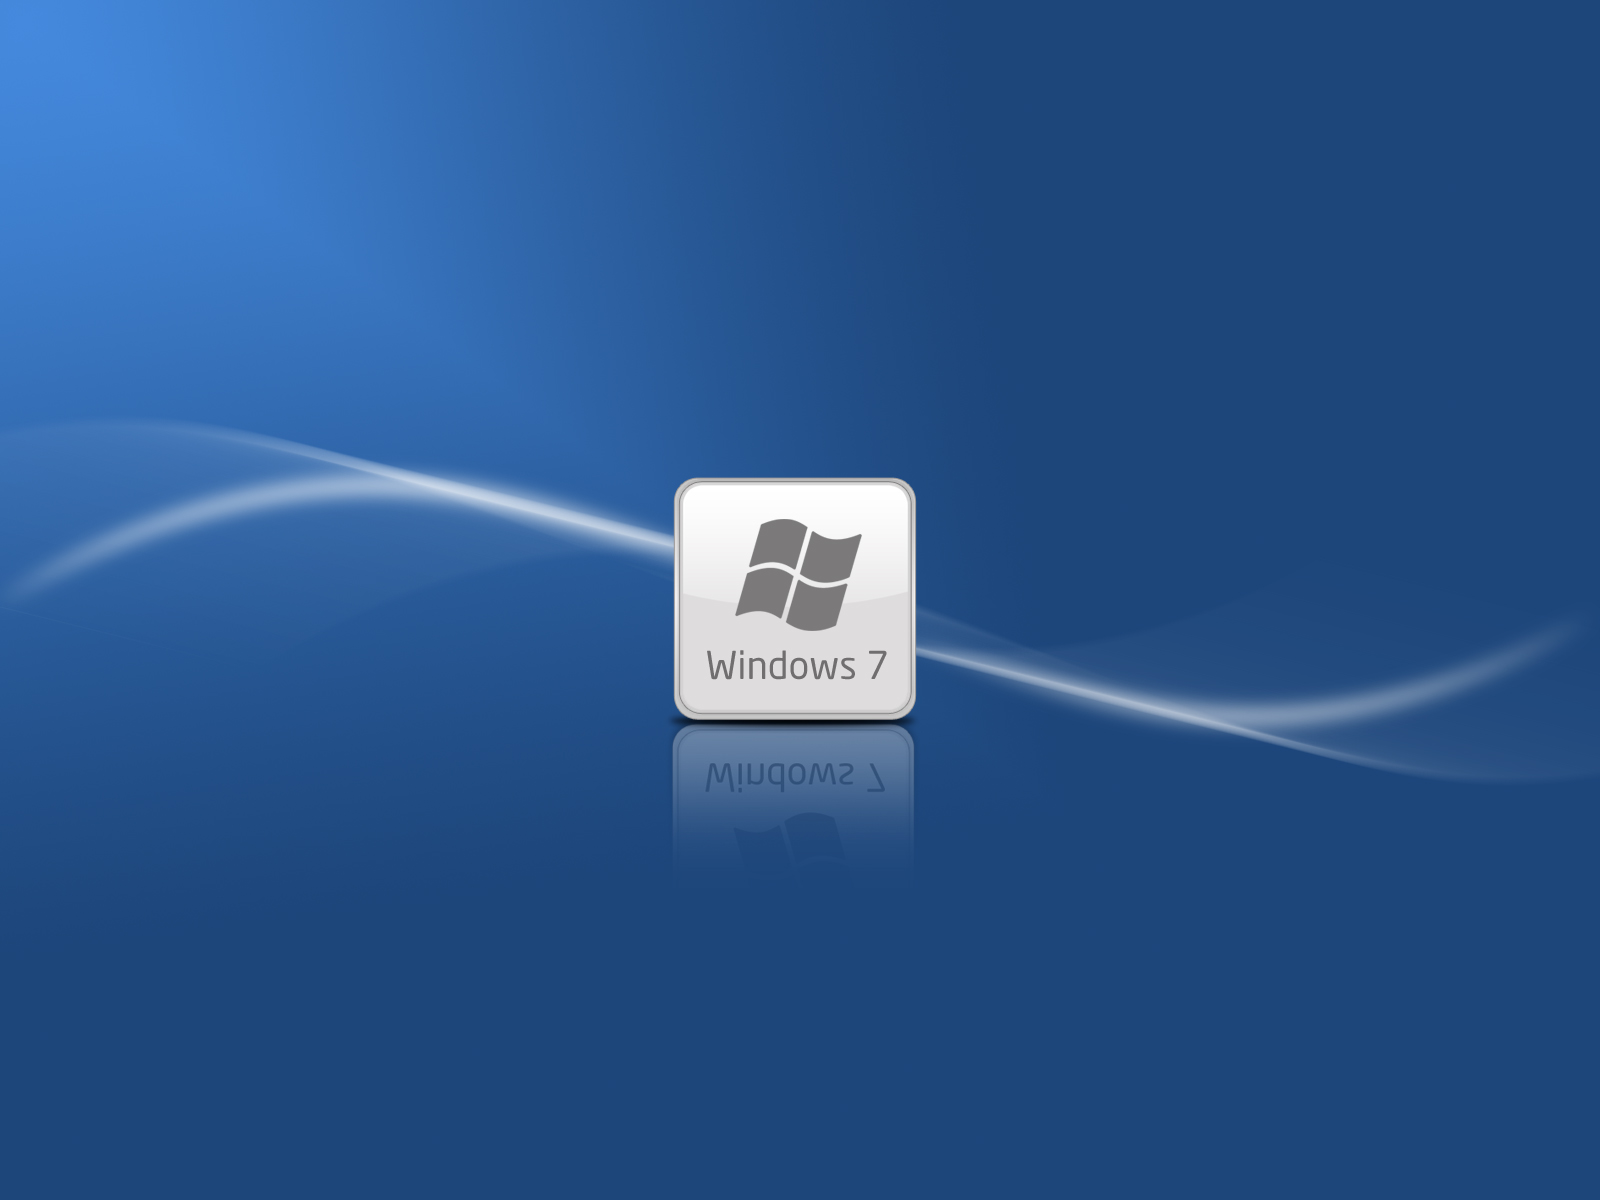 Windows 7 - 1600x1200